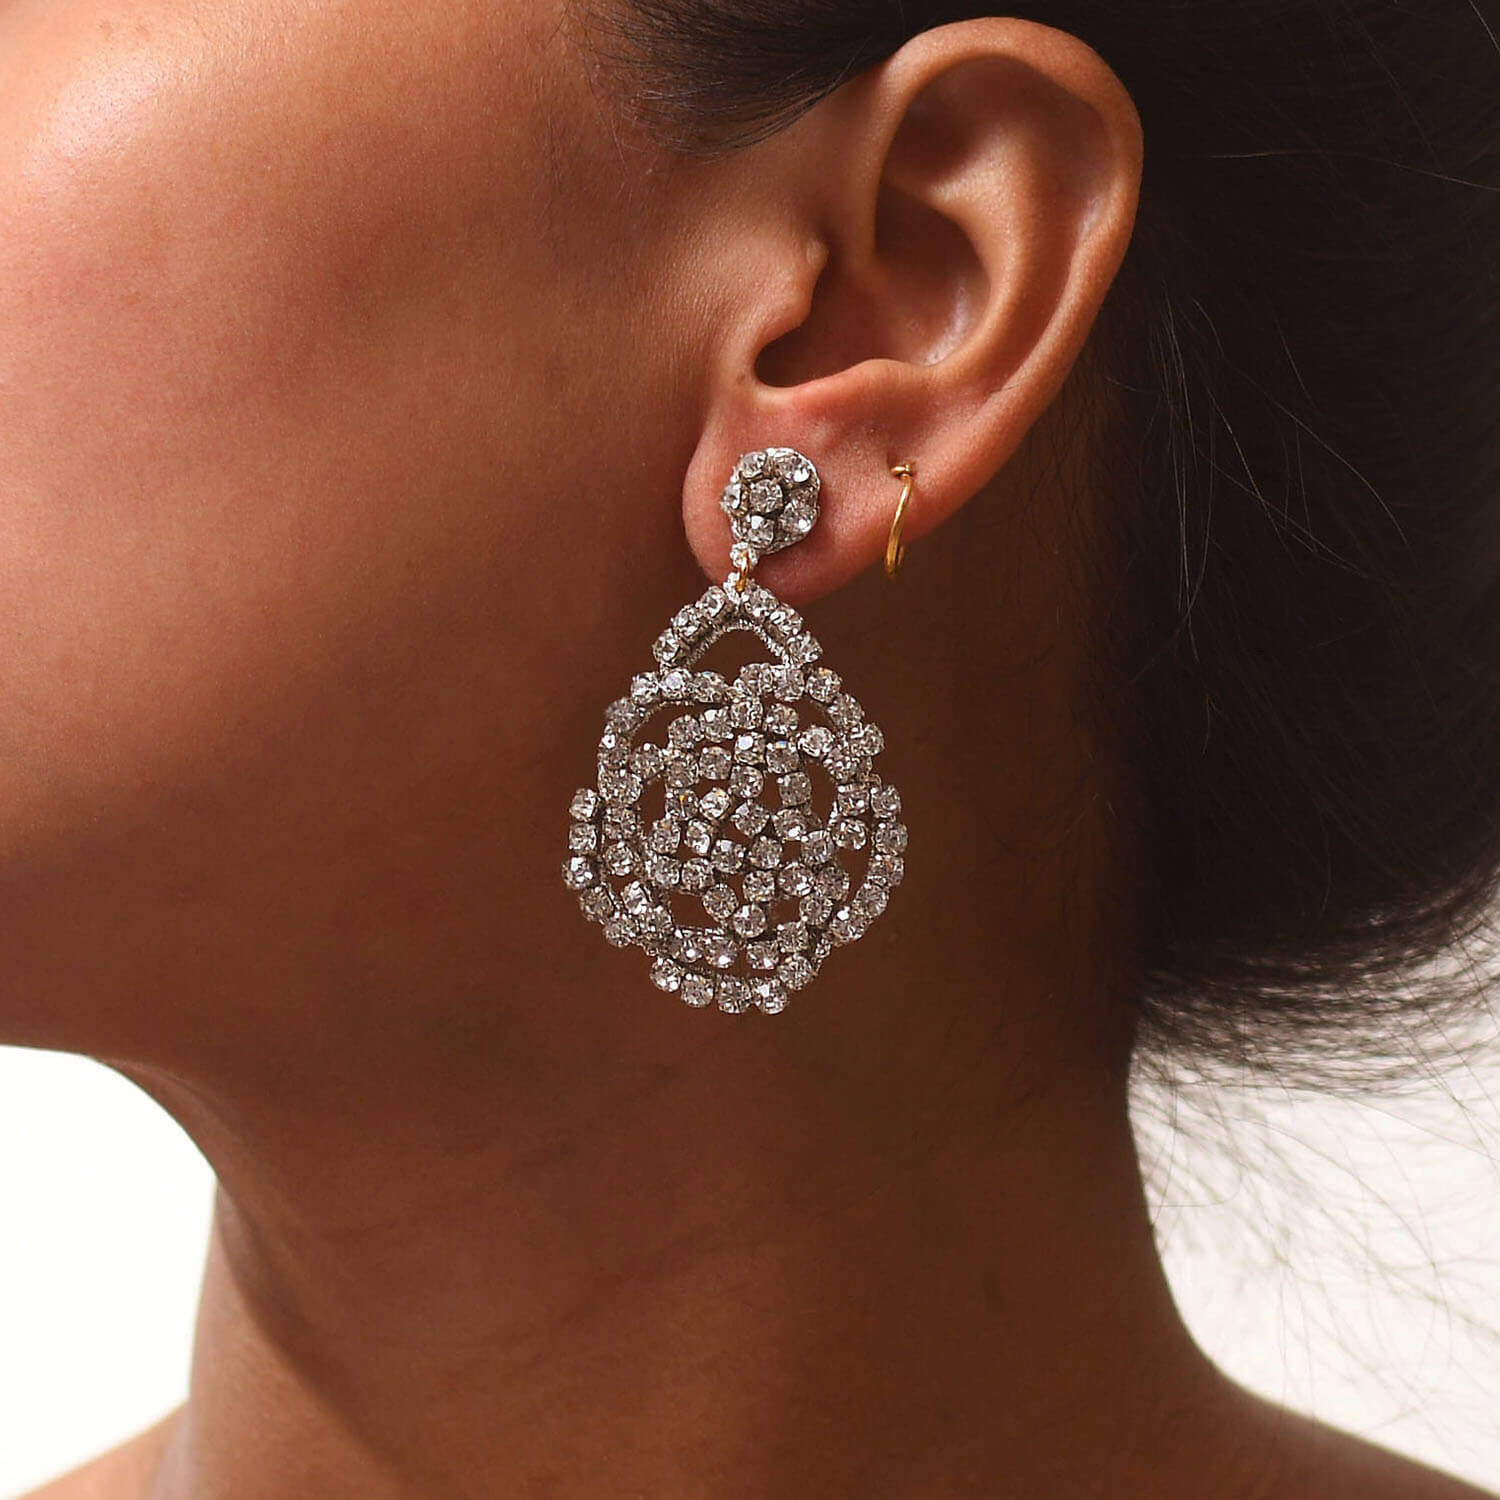 Abitha Clear Earring - Model